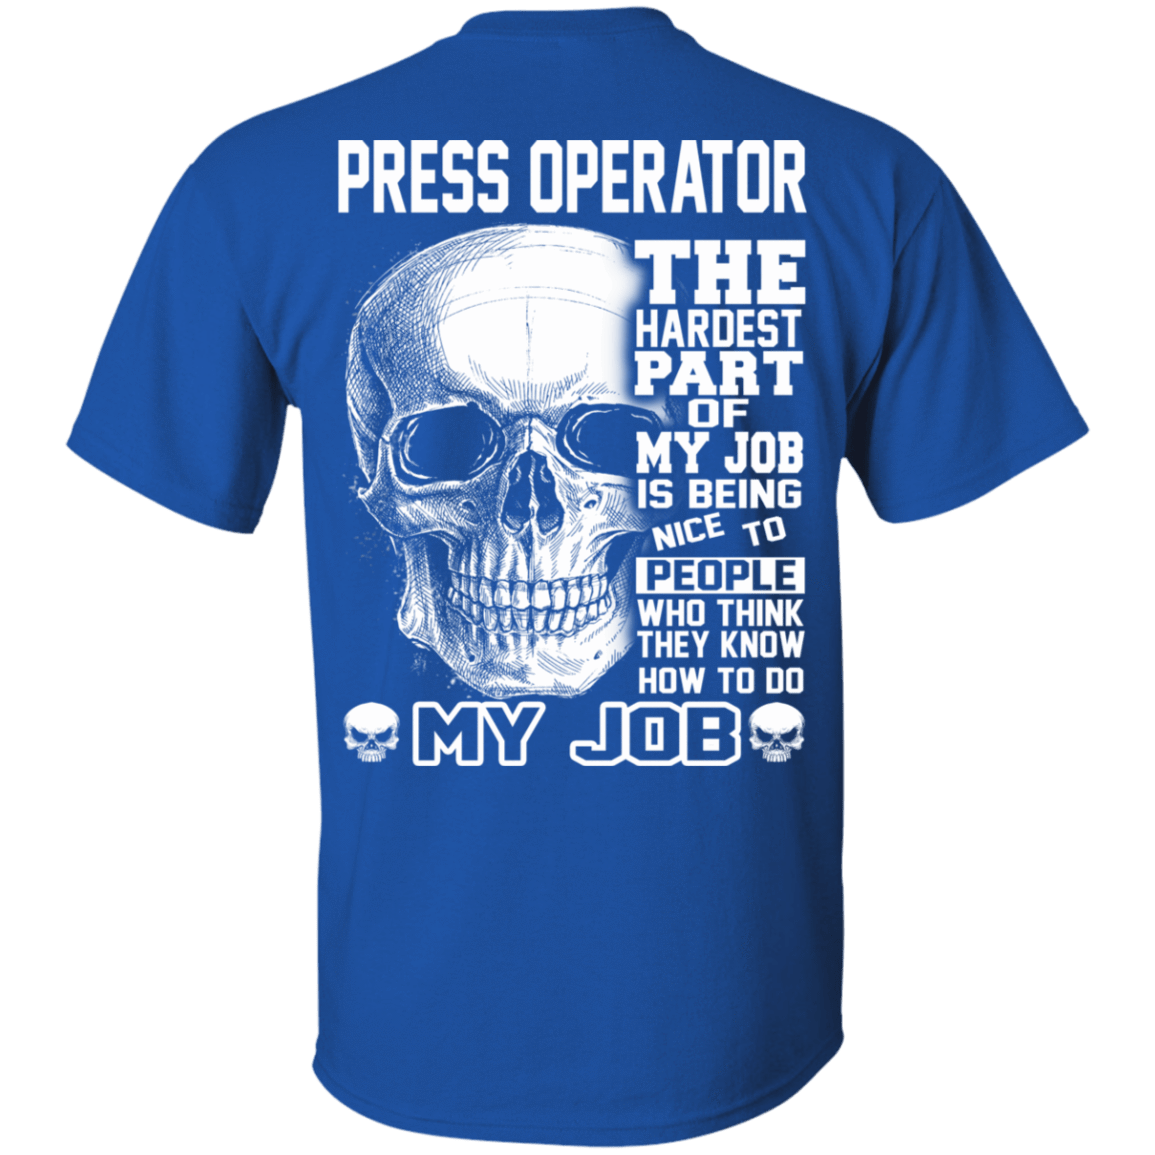 Press Operator The Hardest Part Of My Job 22-110-72798857-249 - Tee Ript